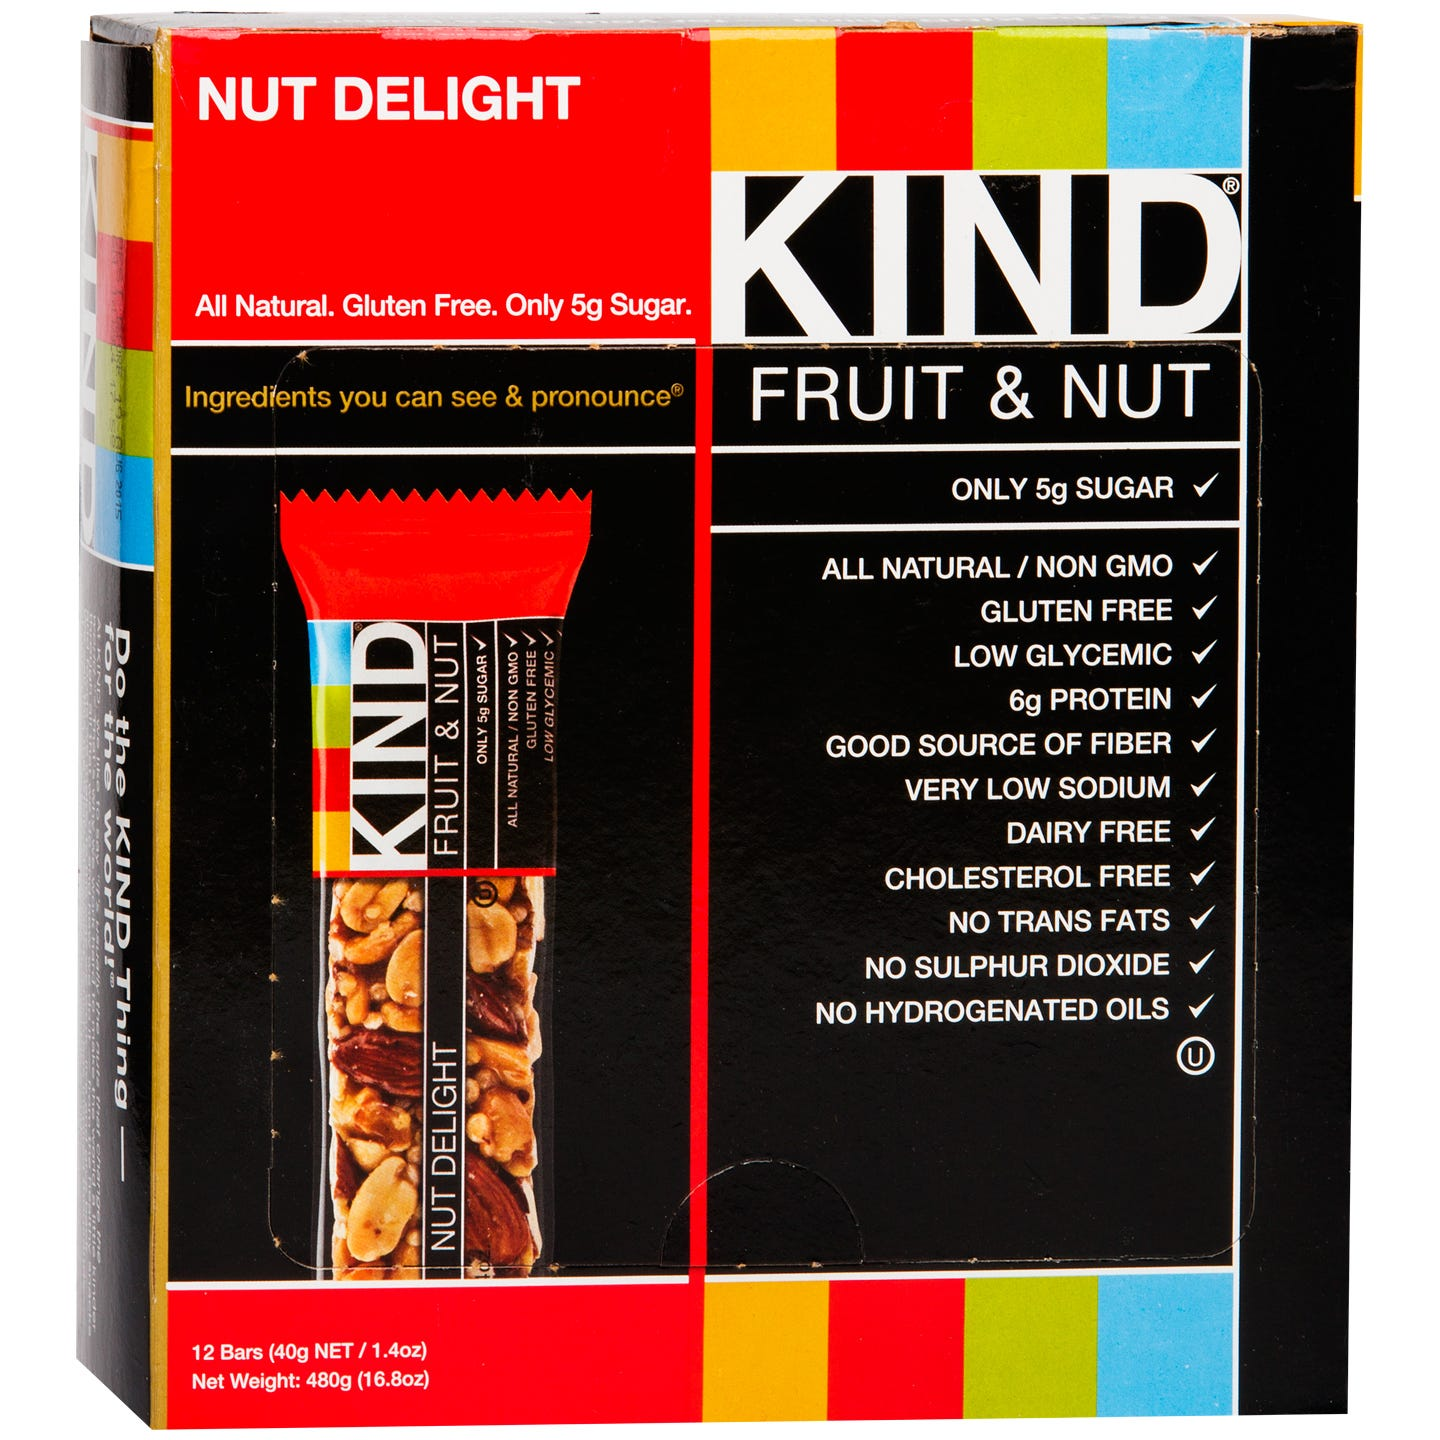 Kind Fruit & Nut Bar Nut Delight (12 ct) - Rapid Diet Weight Loss Products Shop